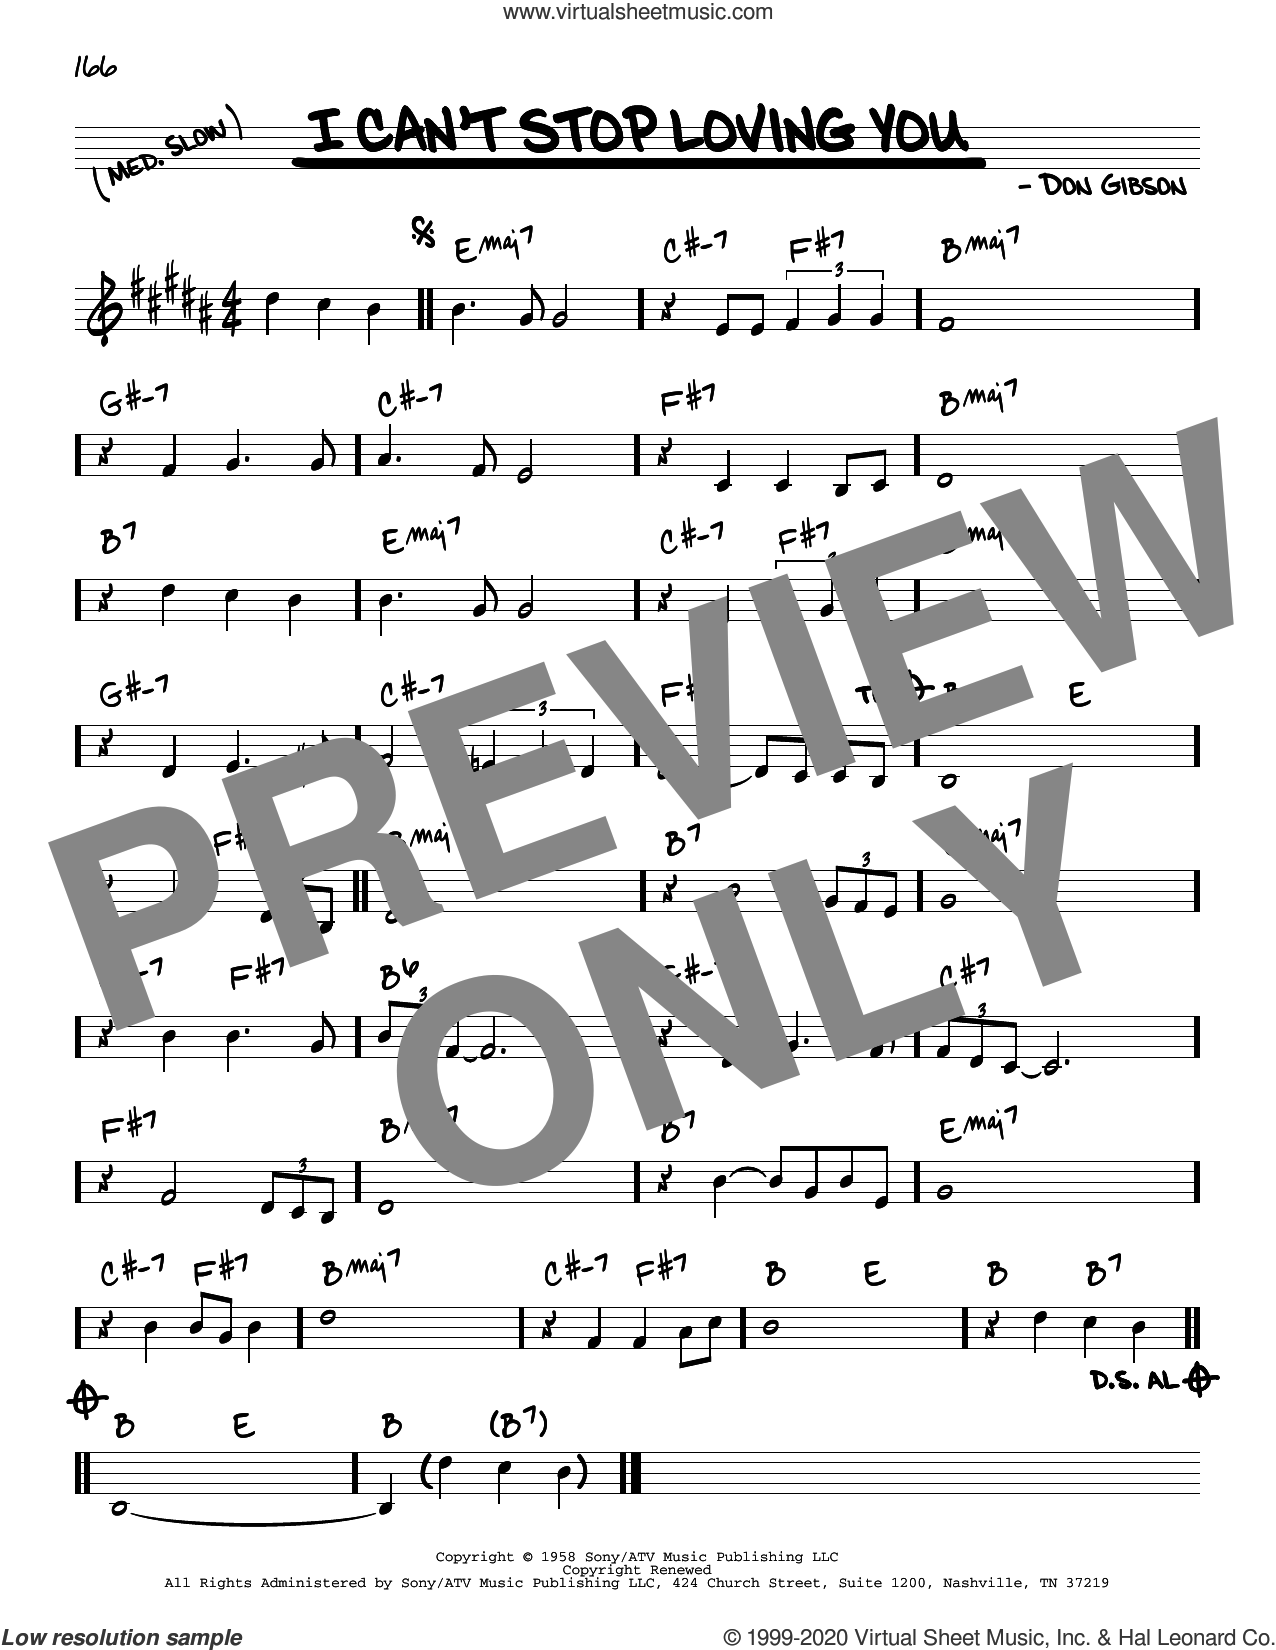 I Can't Stop Loving You sheet music for voice and other instruments (real book) by Don Gibson, Conway Twitty, Elvis Presley, Kitty Wells and Ray Charles, intermediate skill level